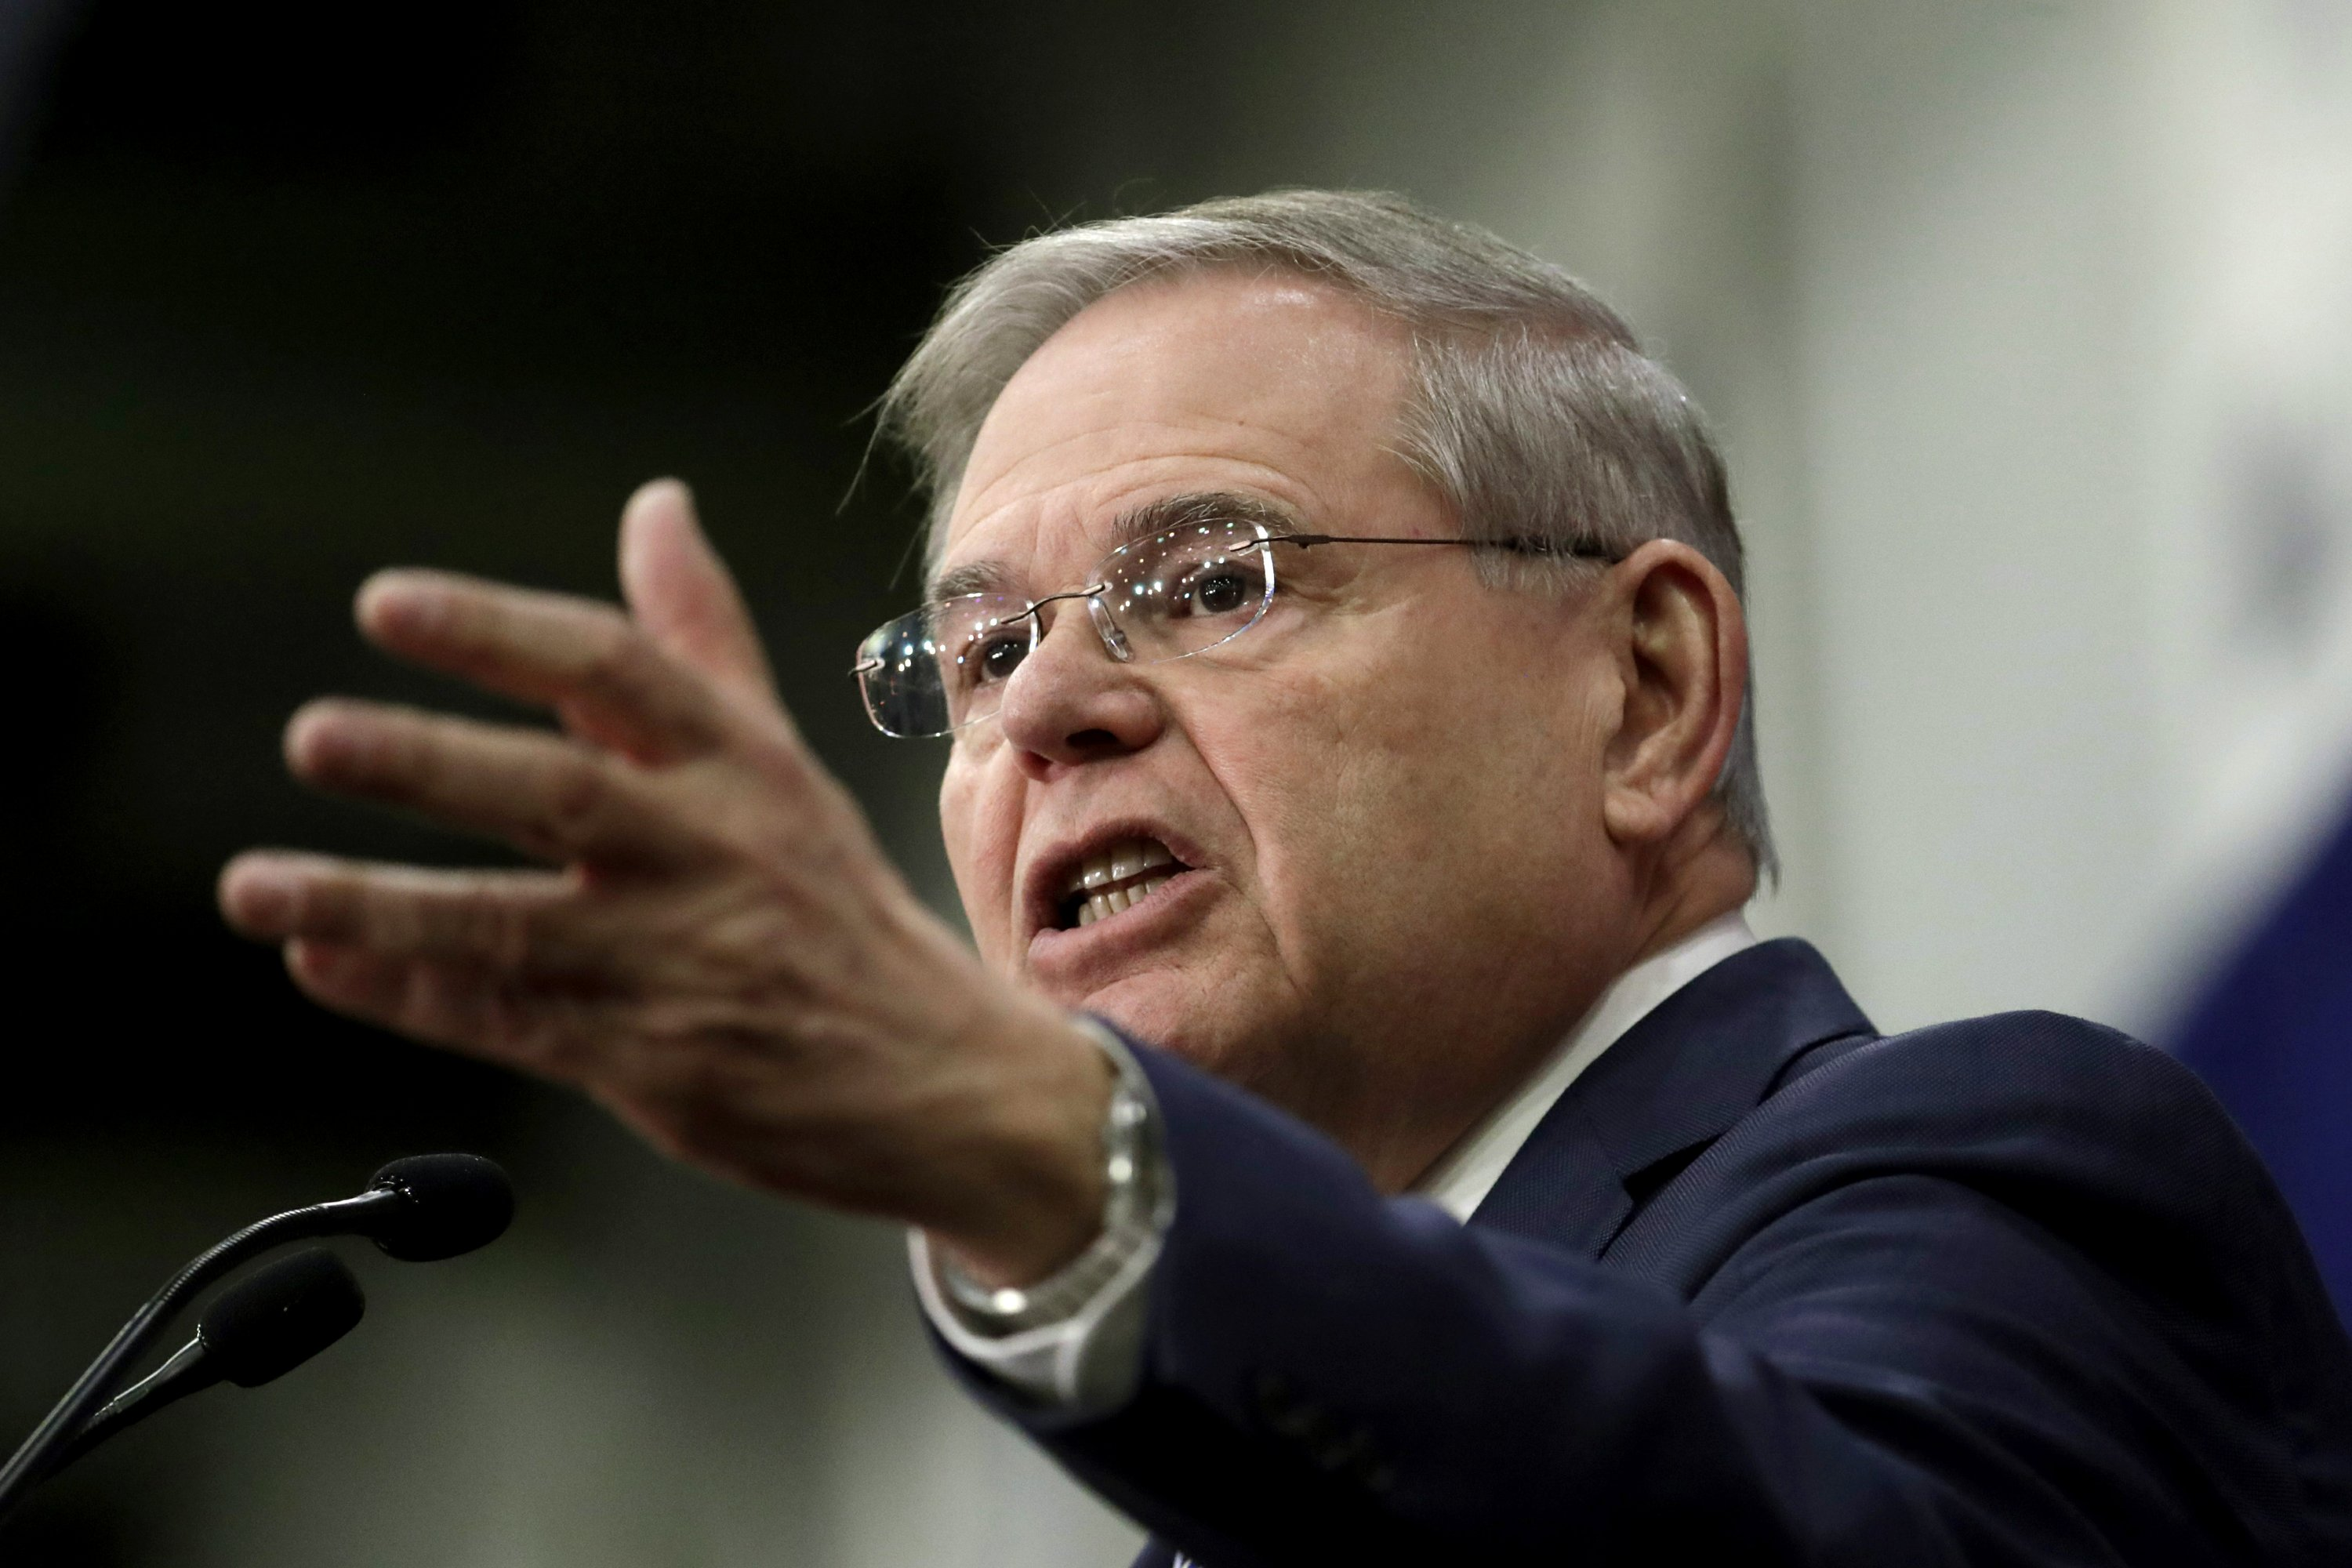 Menendez and Hugin set sights on each other in Senate race